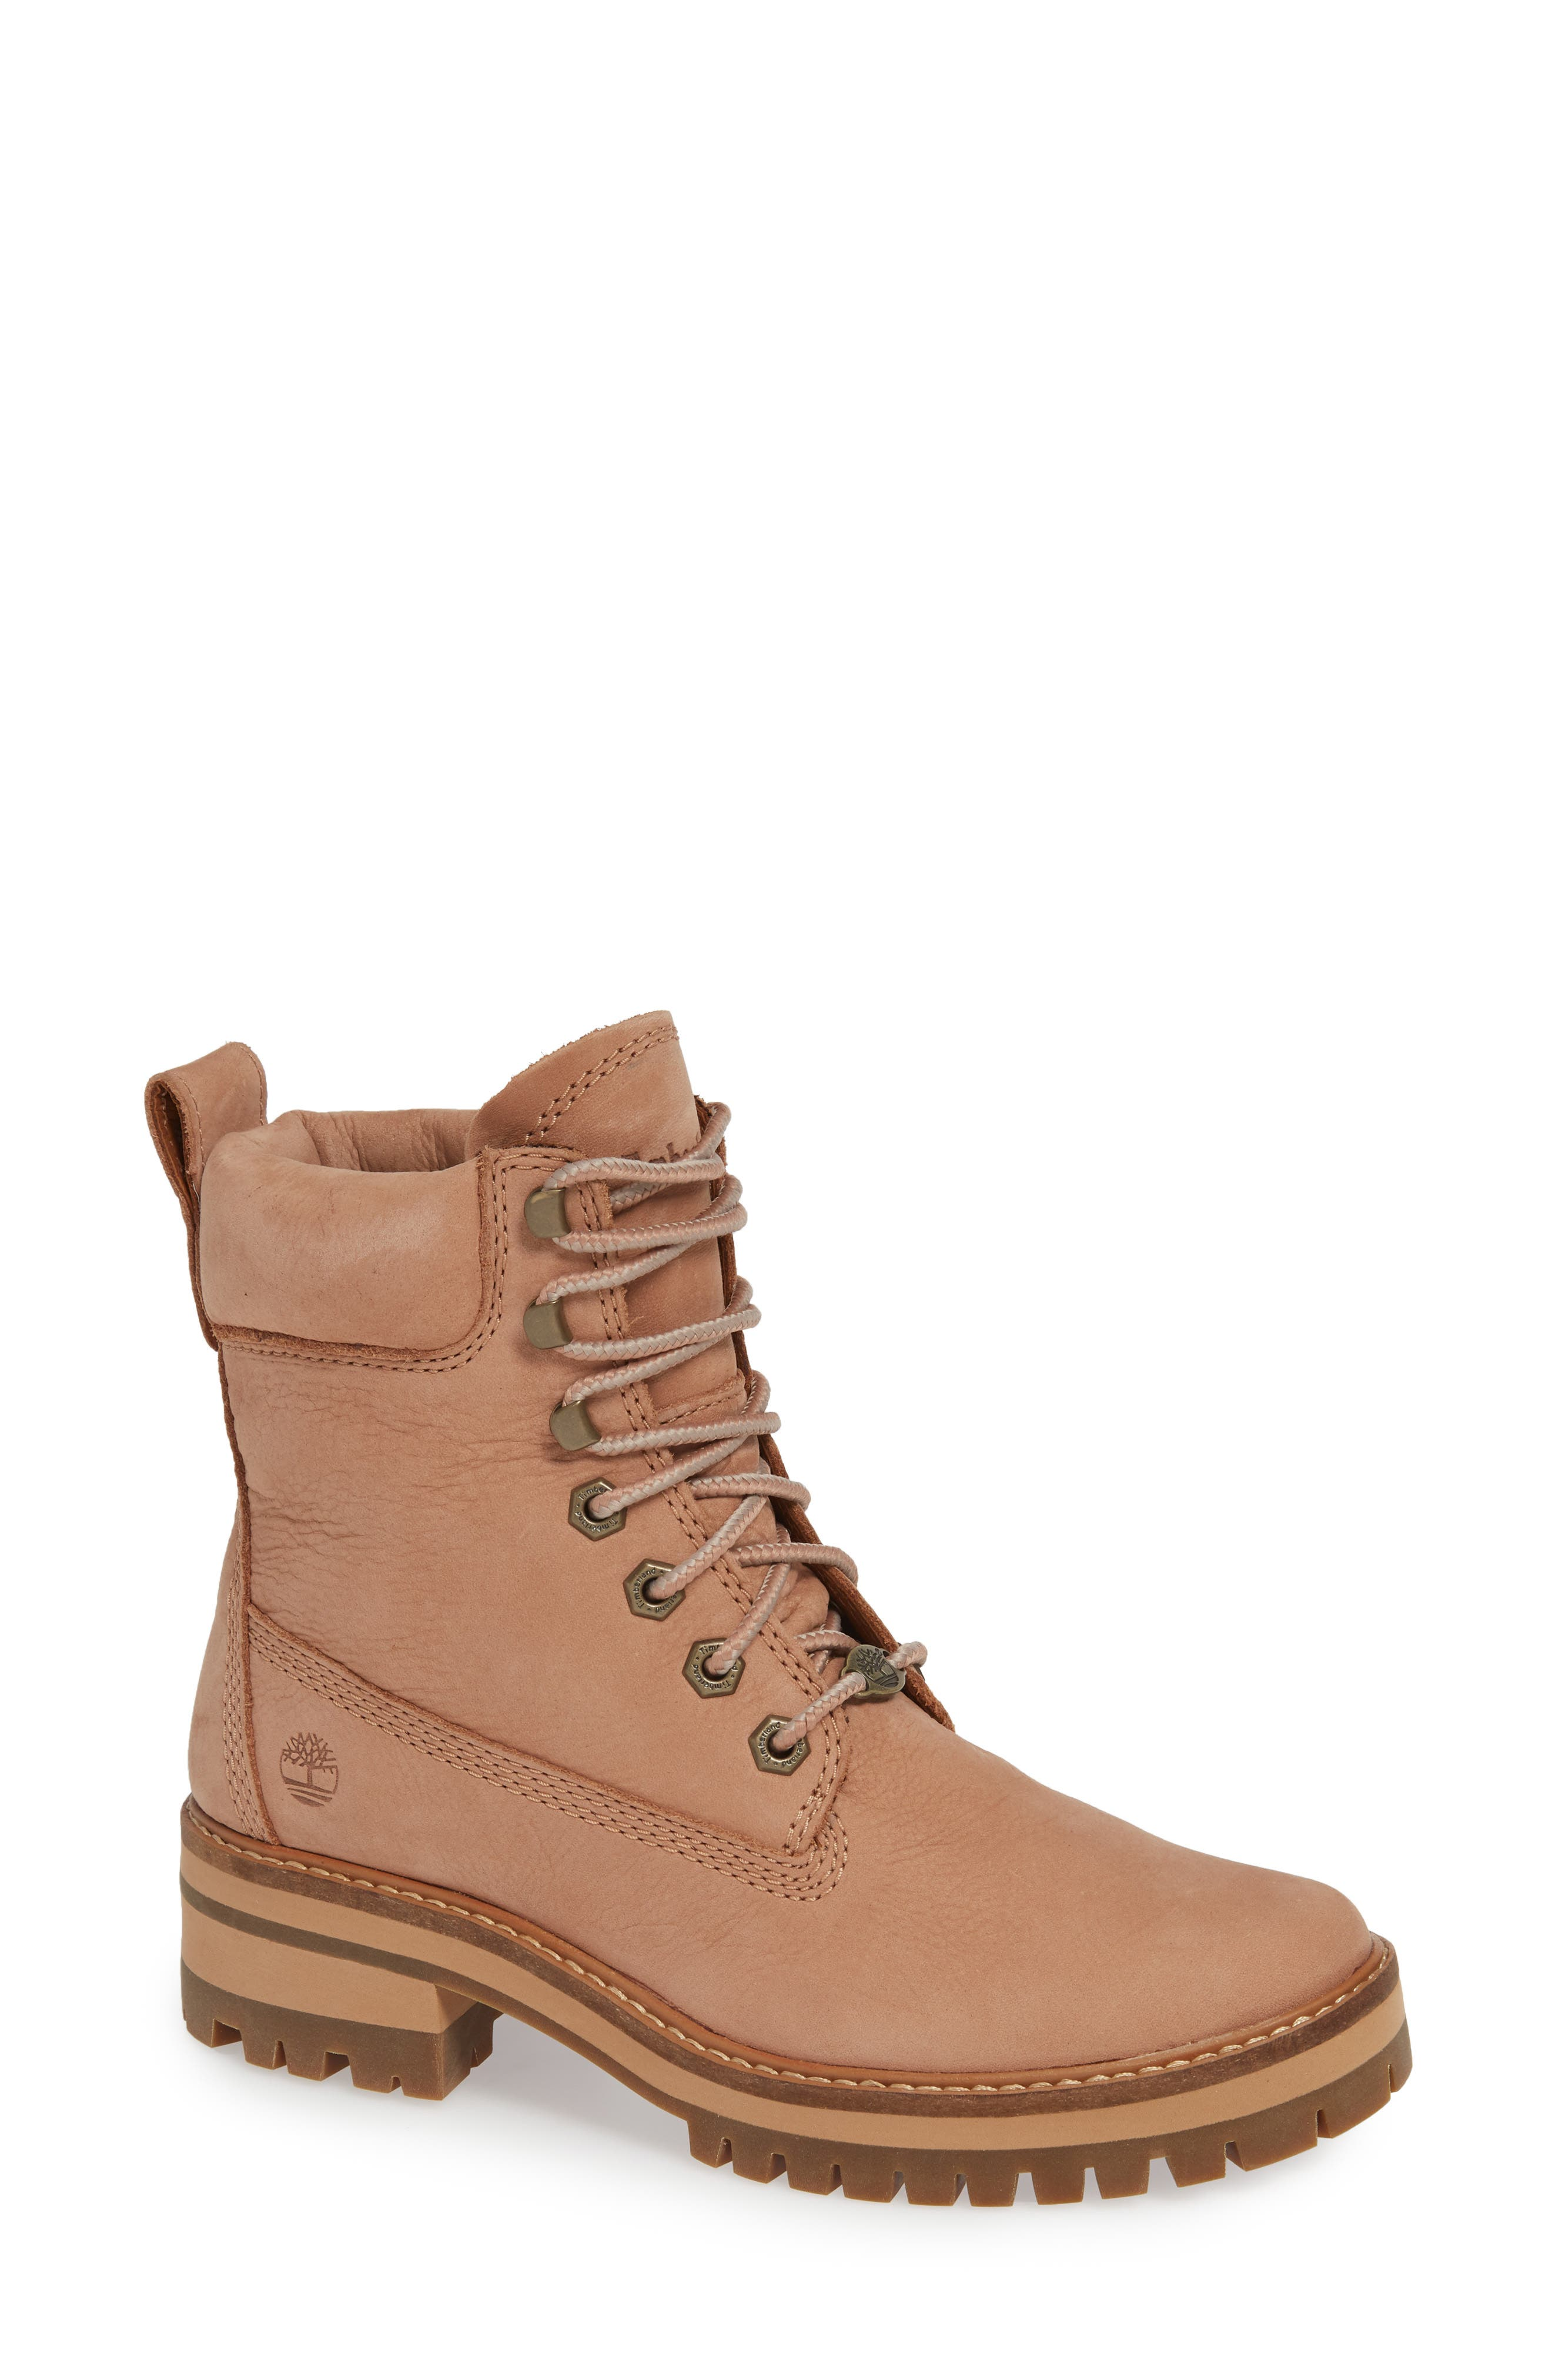 Courmayeur Valley Water Resistant Hiking Boot,                         Main,                         color, TAWNY BROWN NUBUCK